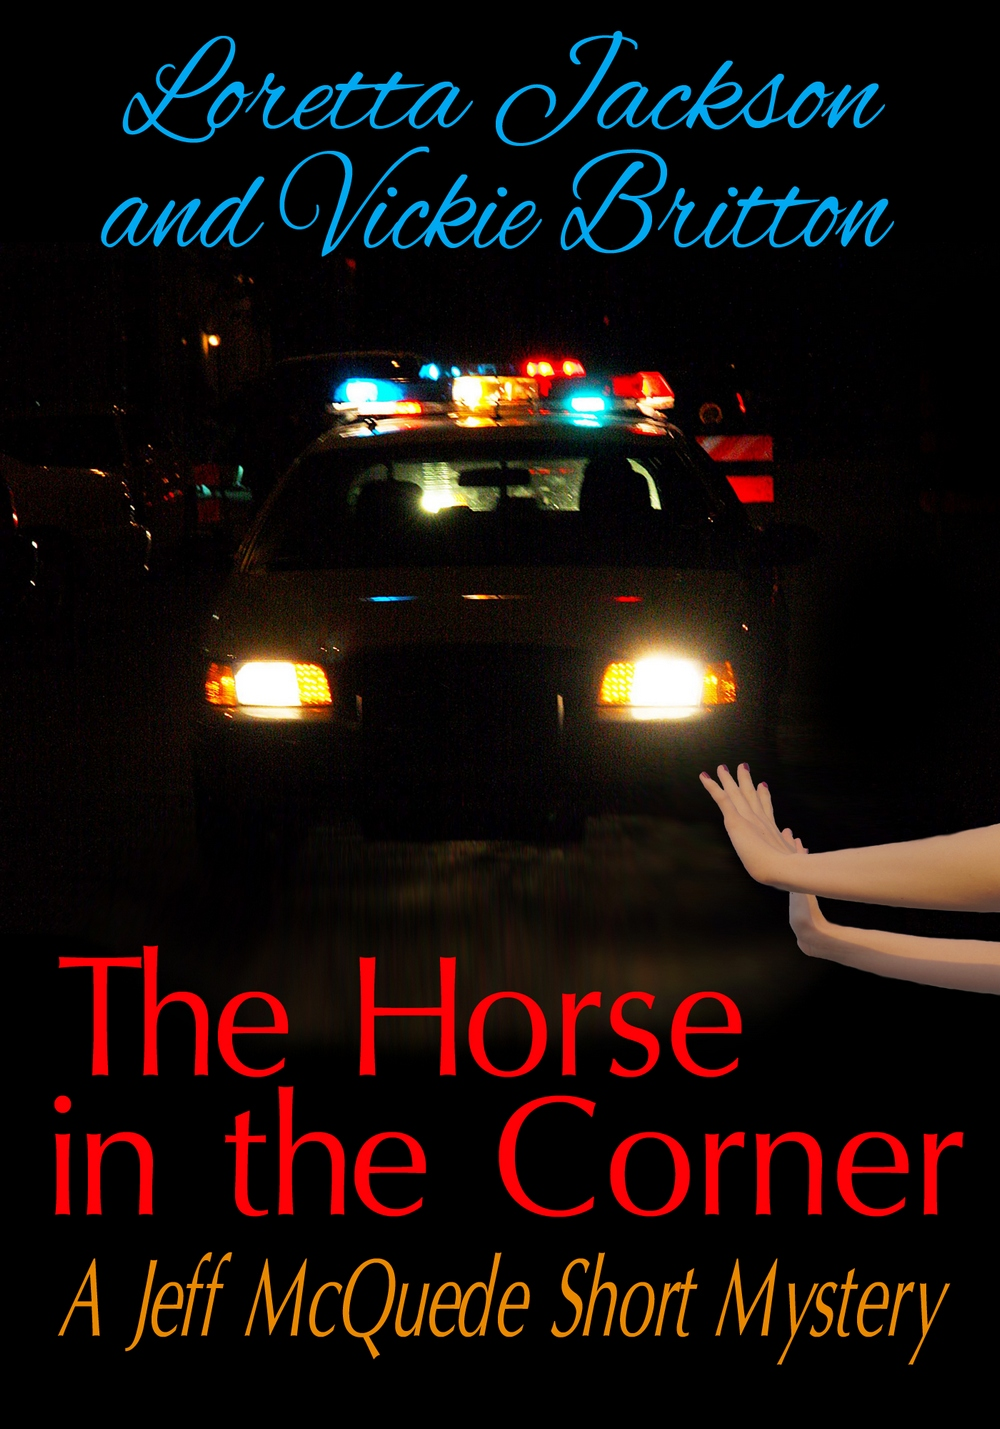 99c READ A JEFF MCQUEDE SHORT STORY: THE HORSE IN THE CORNER